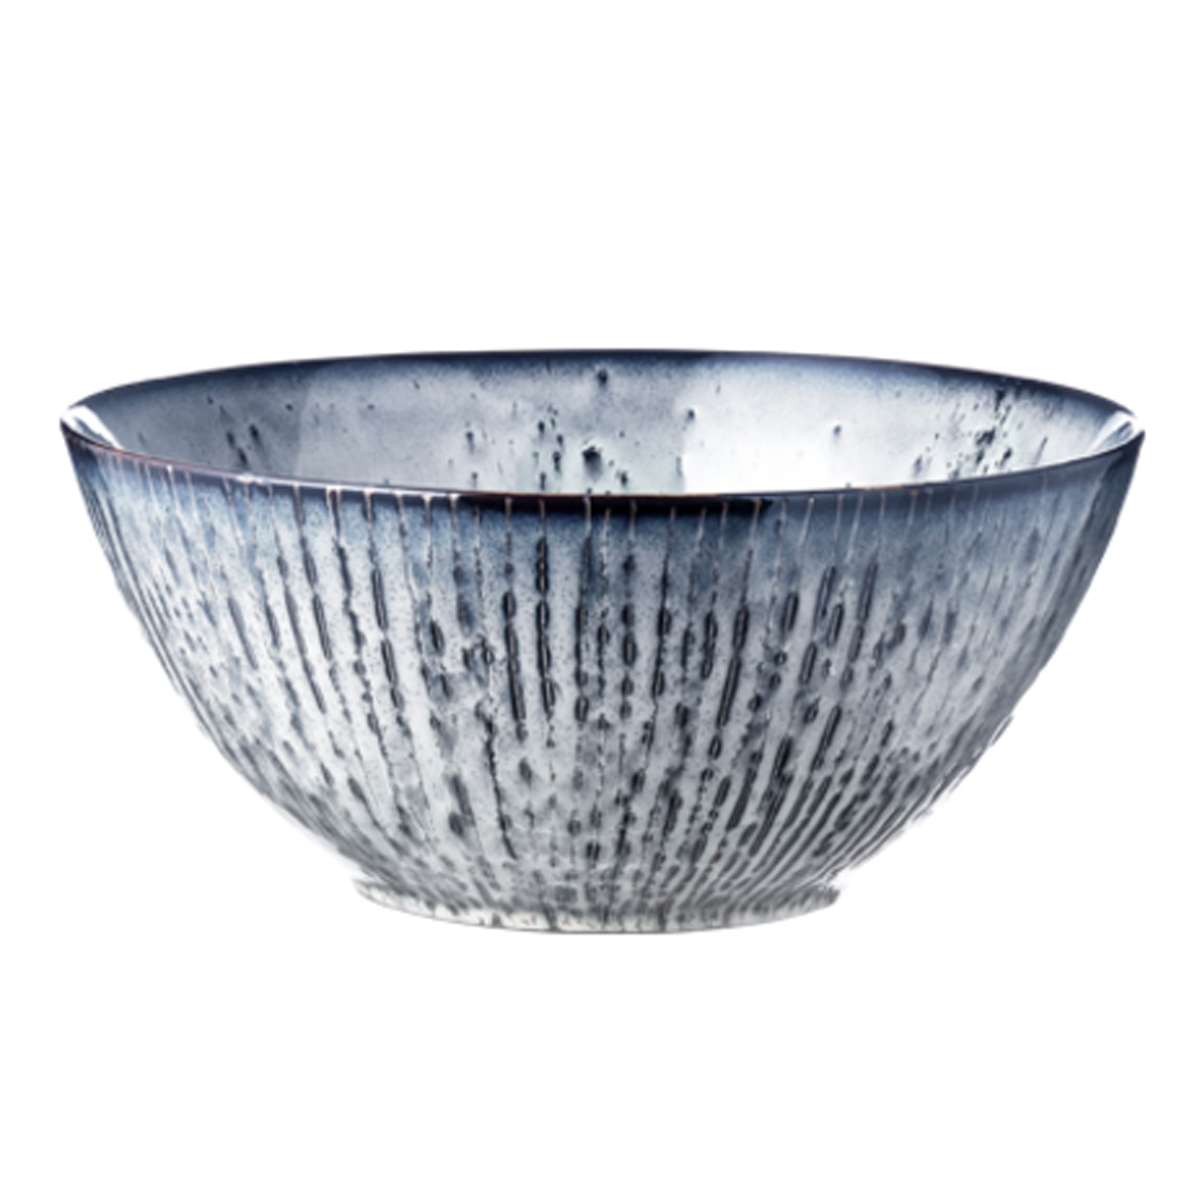 Large-Nordic-Sea-Serving-Bowl